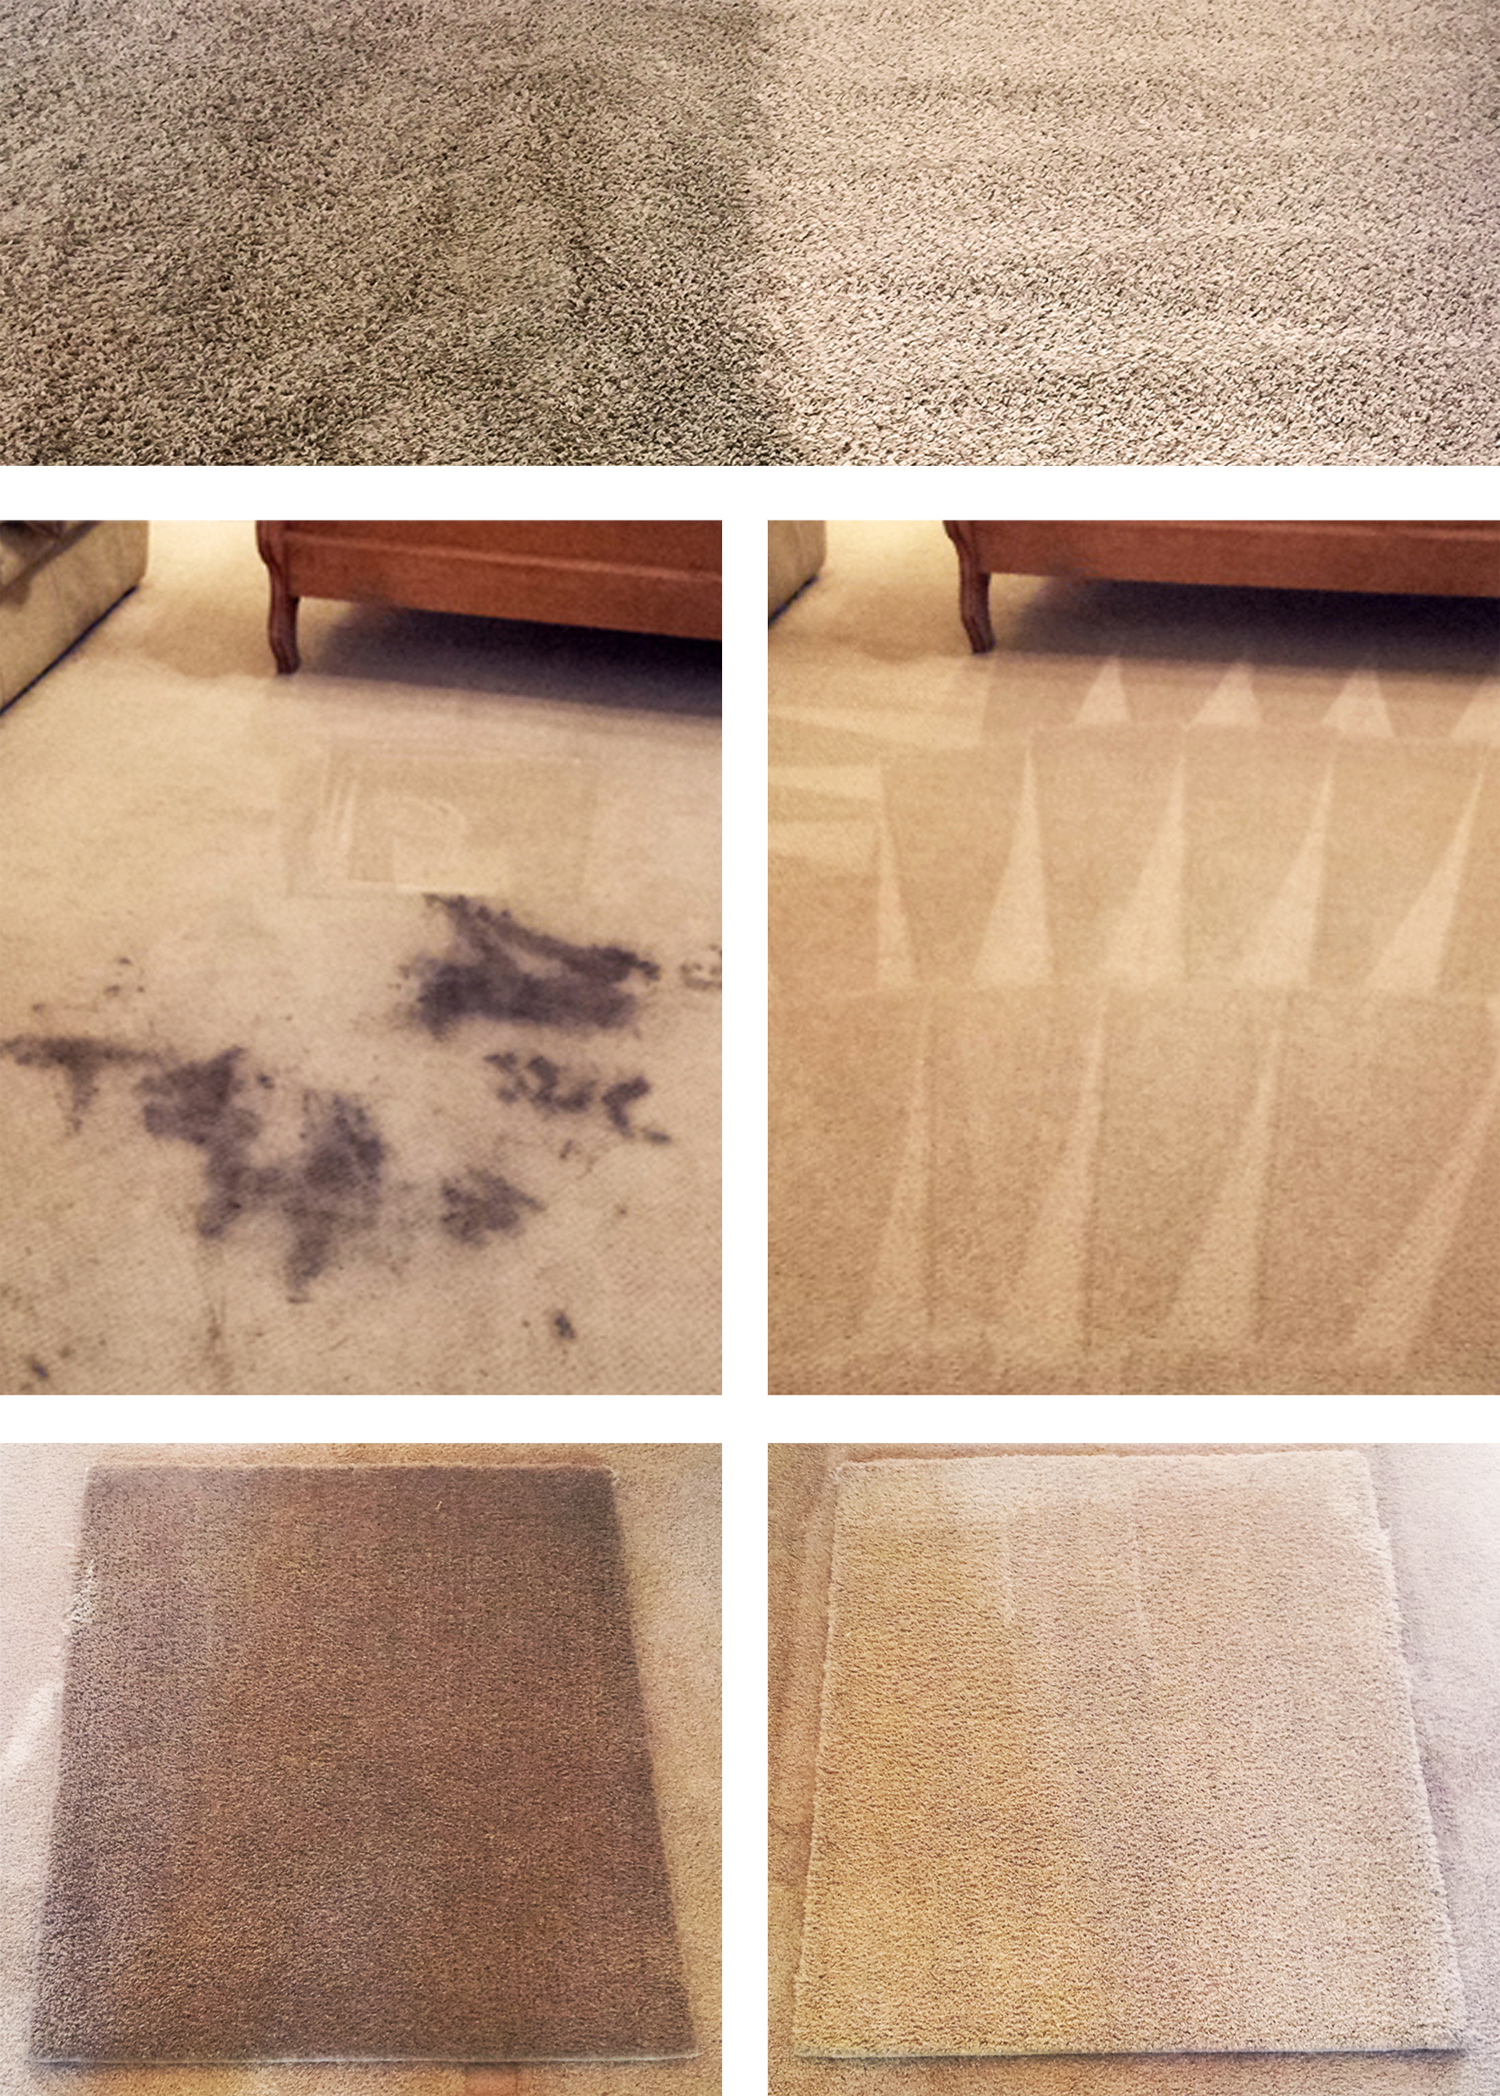 Clearly Clean Carpet Cleaning in Gilbert, AZ